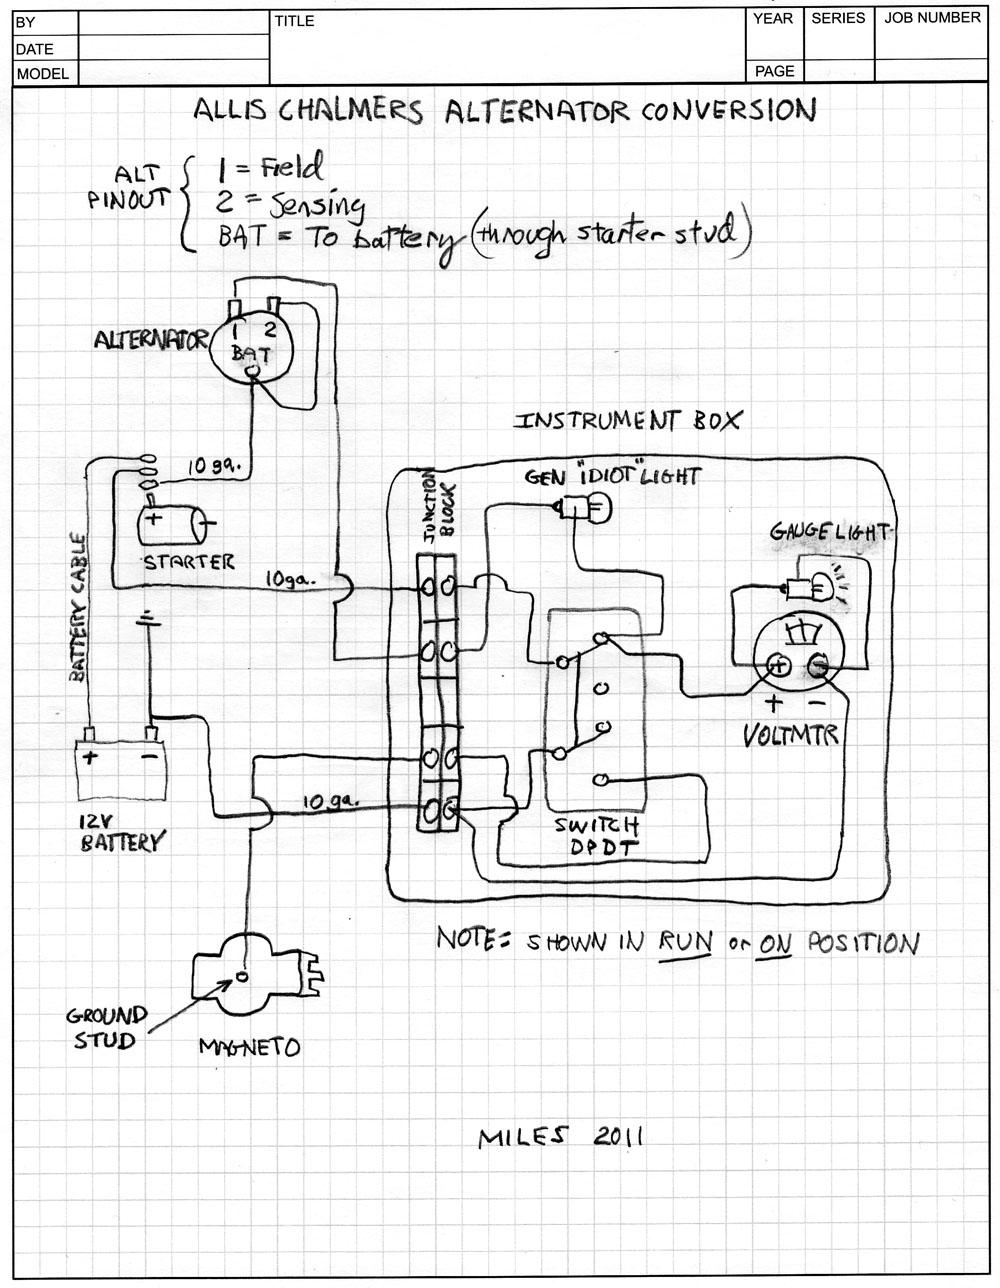 ACshematicjpg squid's fab shop allis chalmers b alternator conversion allis chalmers wiring diagram for wd at mifinder.co